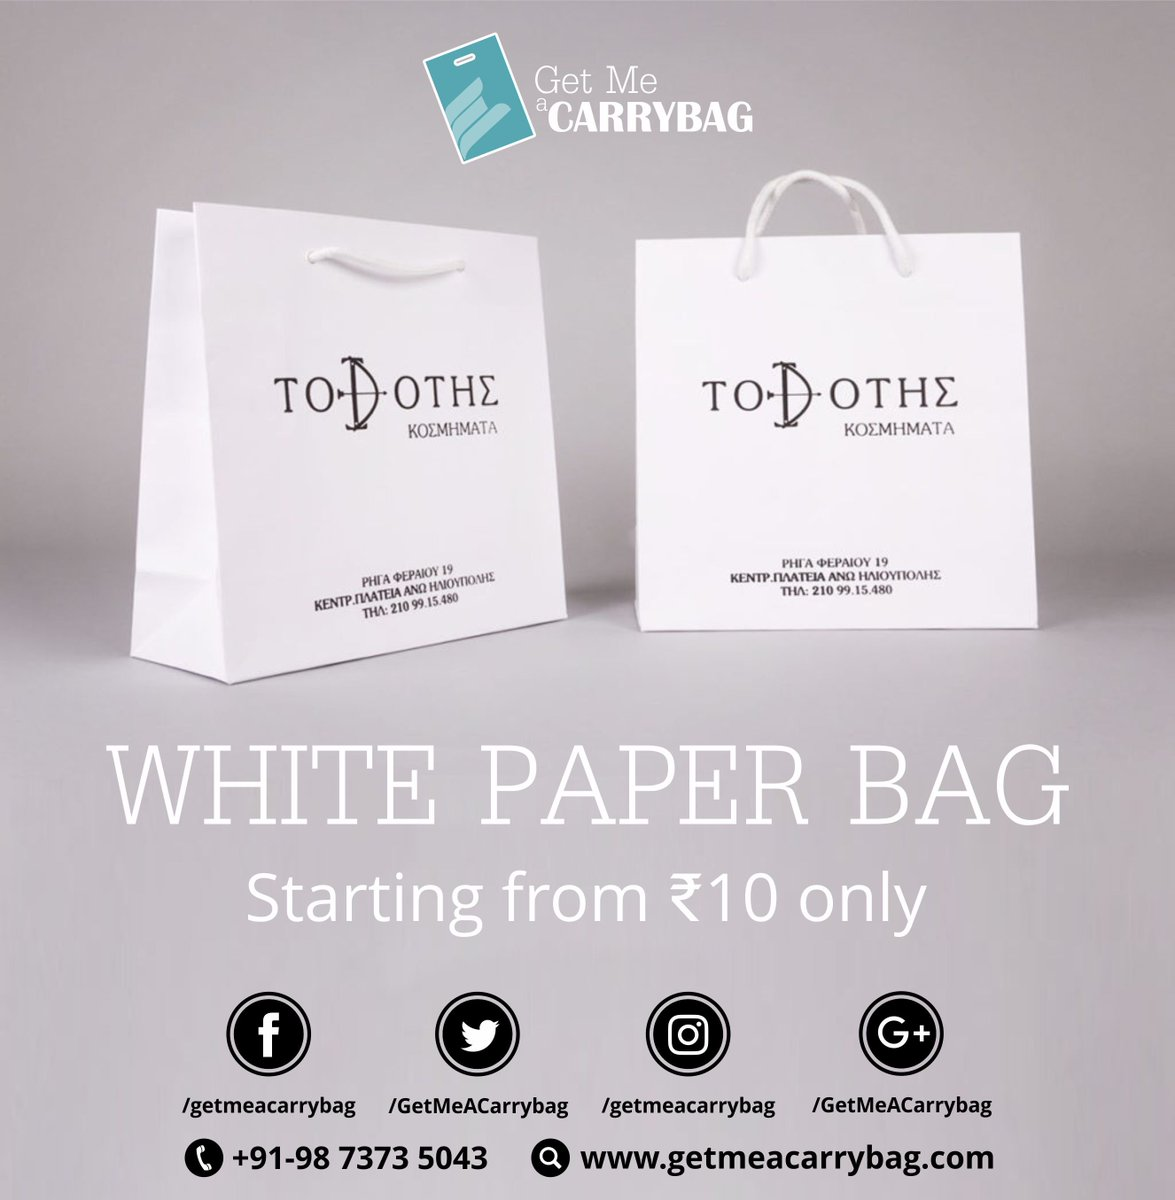 Getmeacarrybag A Twitter White Paper Bags Visit Https T Co Eechc9oul9 Call Or Whatsapp At 91 9873735043 Mail Us Info Getmeacarrybag Com Getmeacarrybag Colour Print Customized Design Gussetbag Paper Carry Bag Kraftpaperbag Https T Co